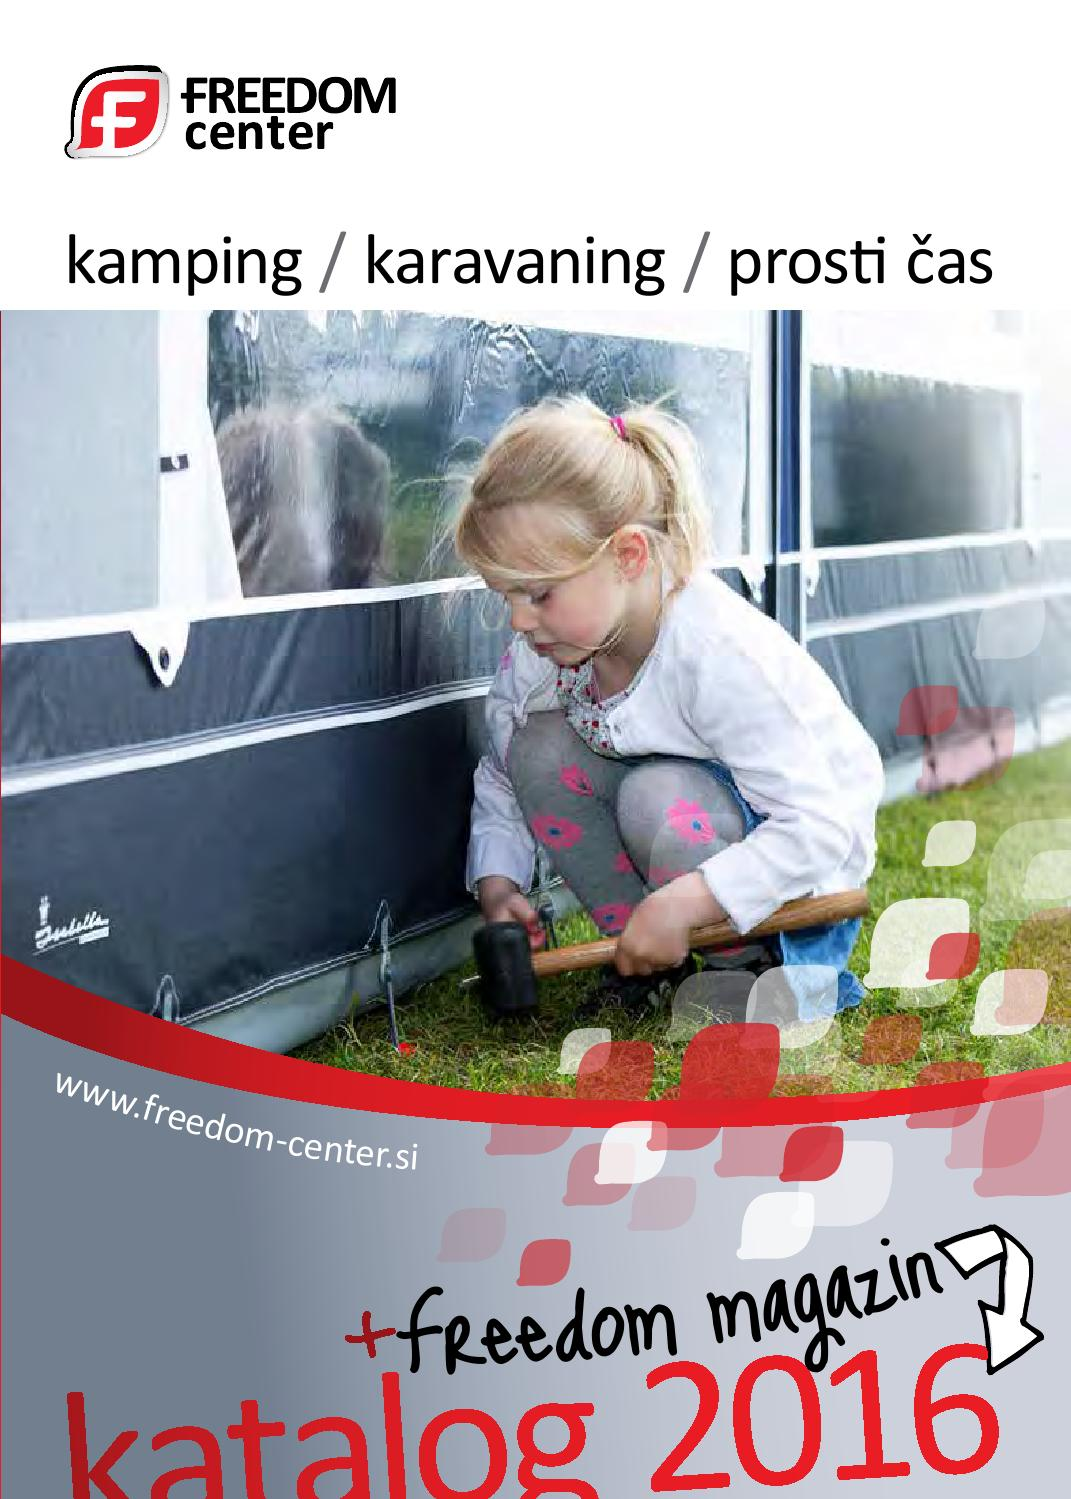 Küchen Wasserarmaturen Freedom Katalog 2016 By Freedom Center Celje Issuu